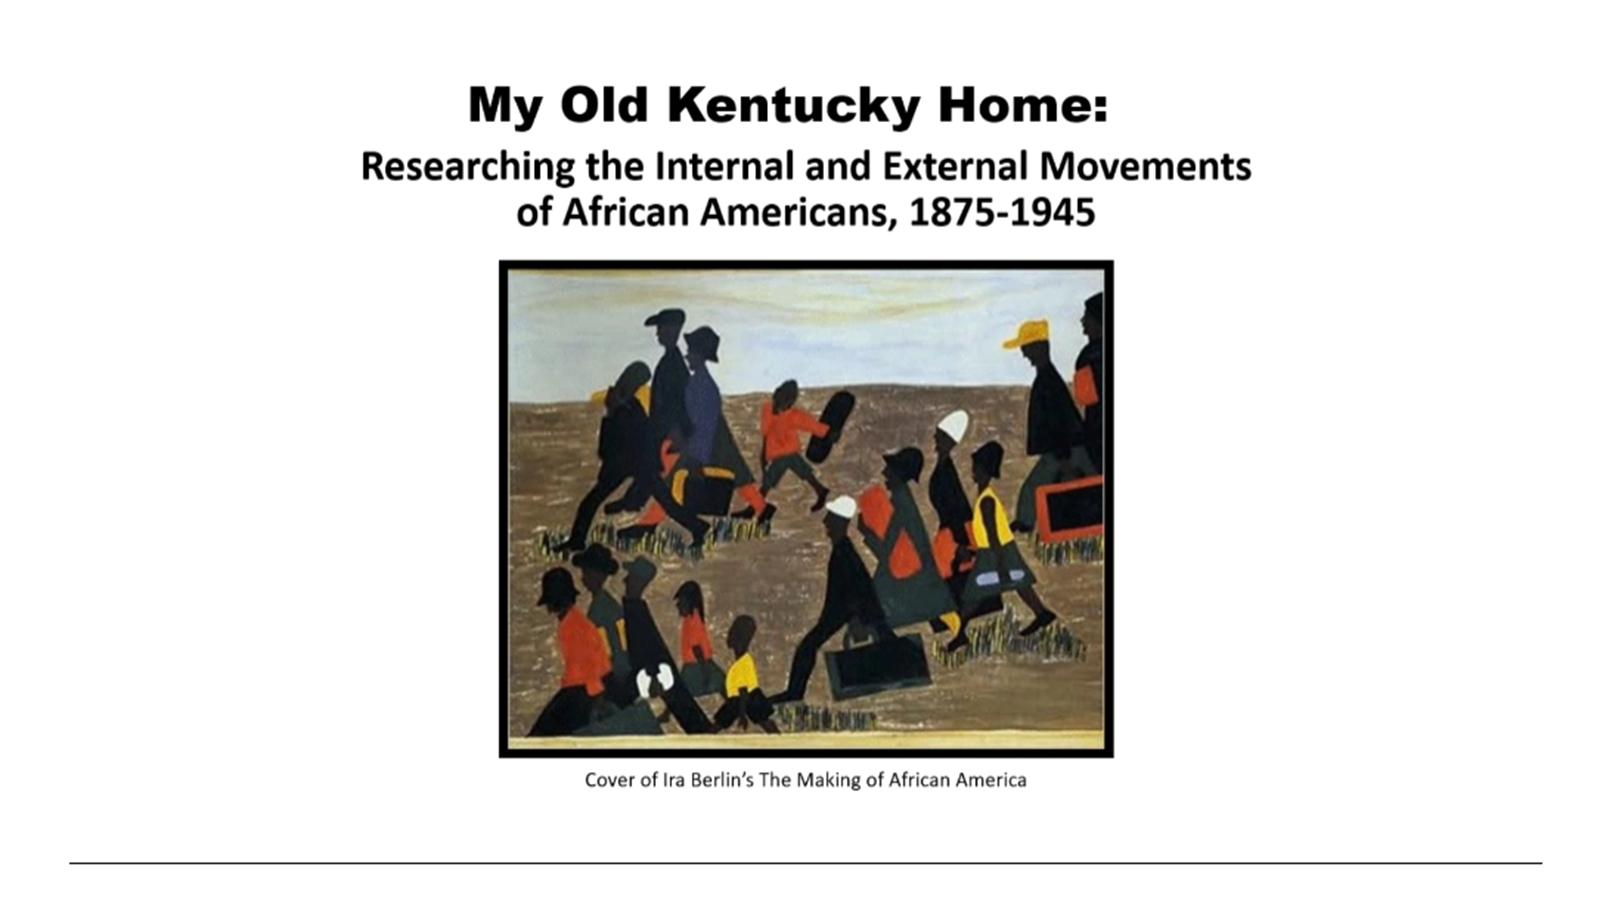 My Old Kentucky Home – Researching the Movements of African Americans, 1875-1900s